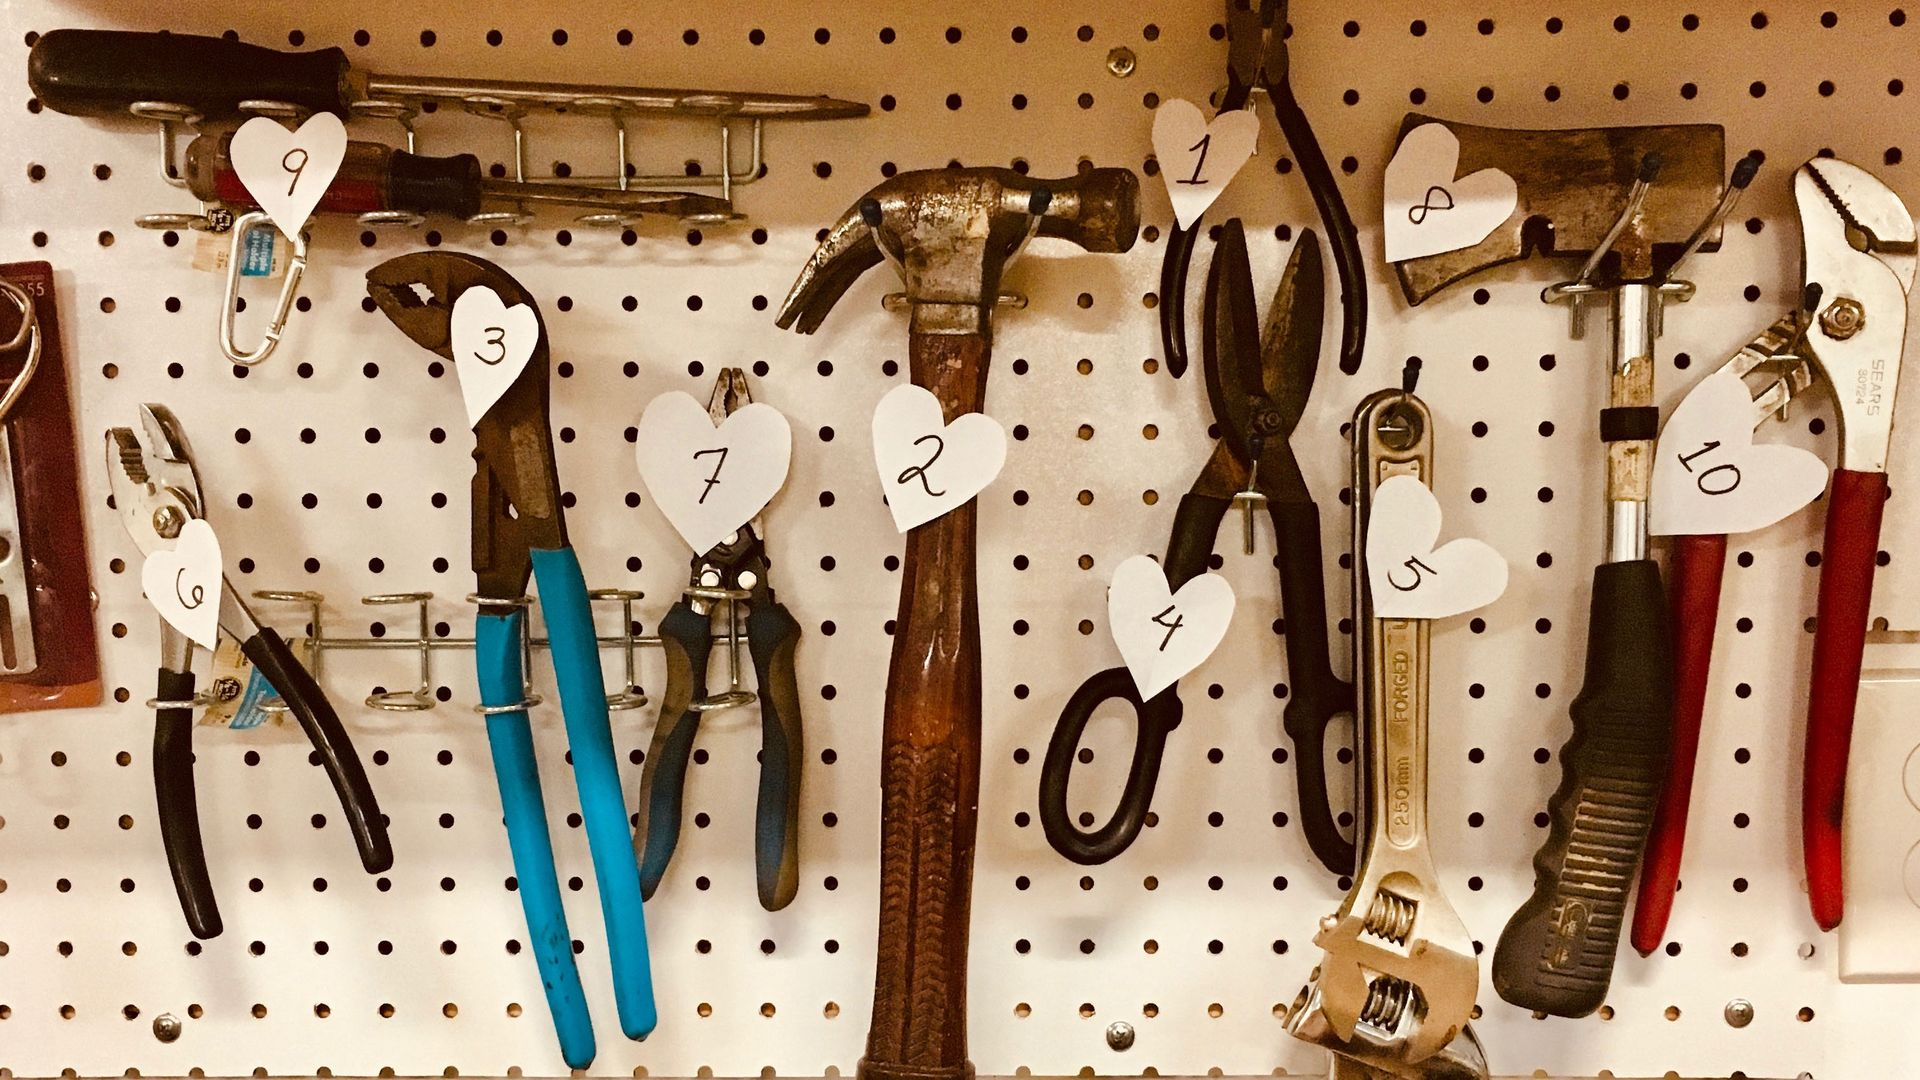 Howstuffworks: Can You Identify Which Tool Is Needed for the